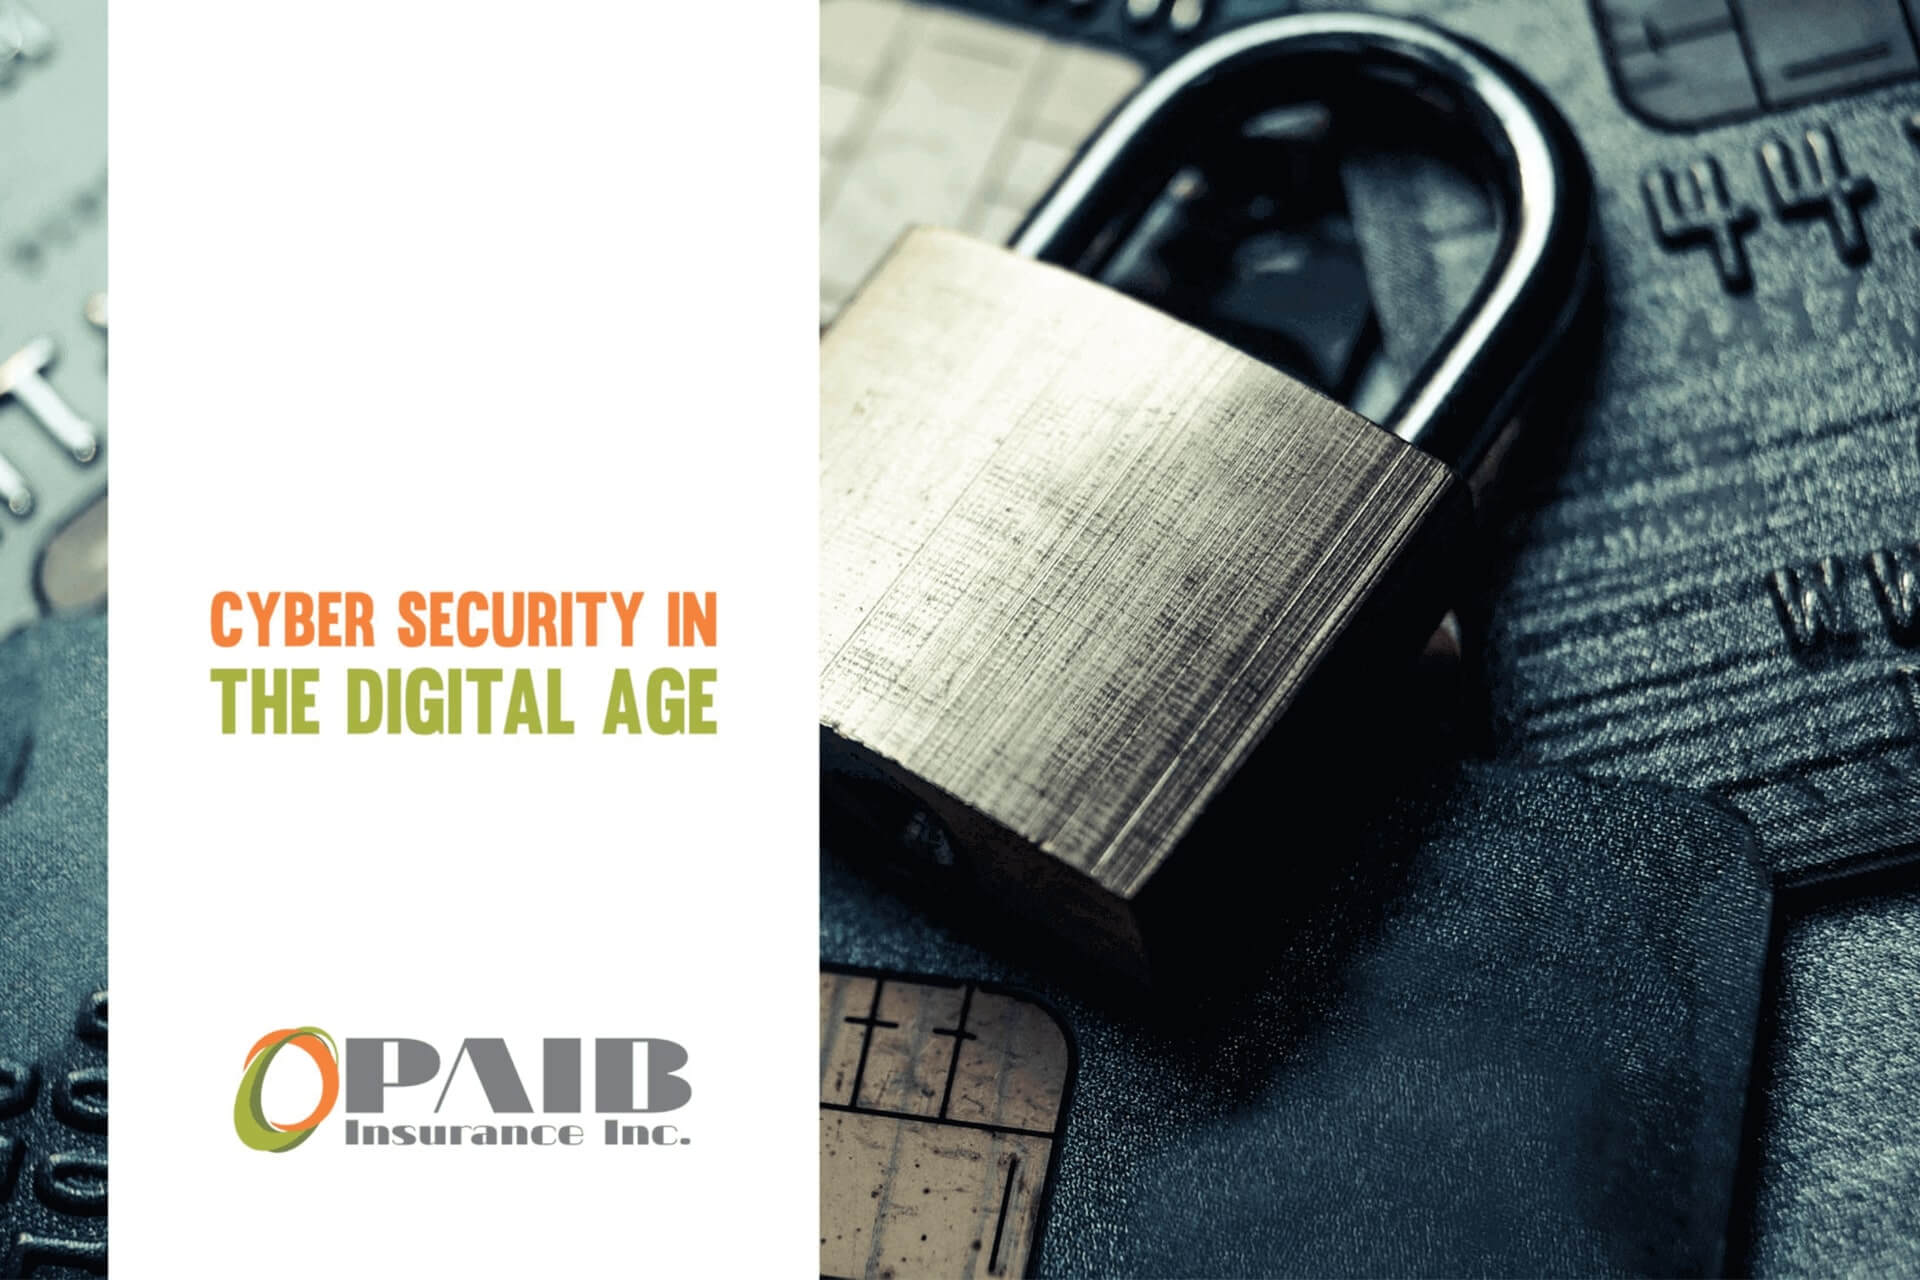 Cyber Security in the Digital Age - PAIB Insurance